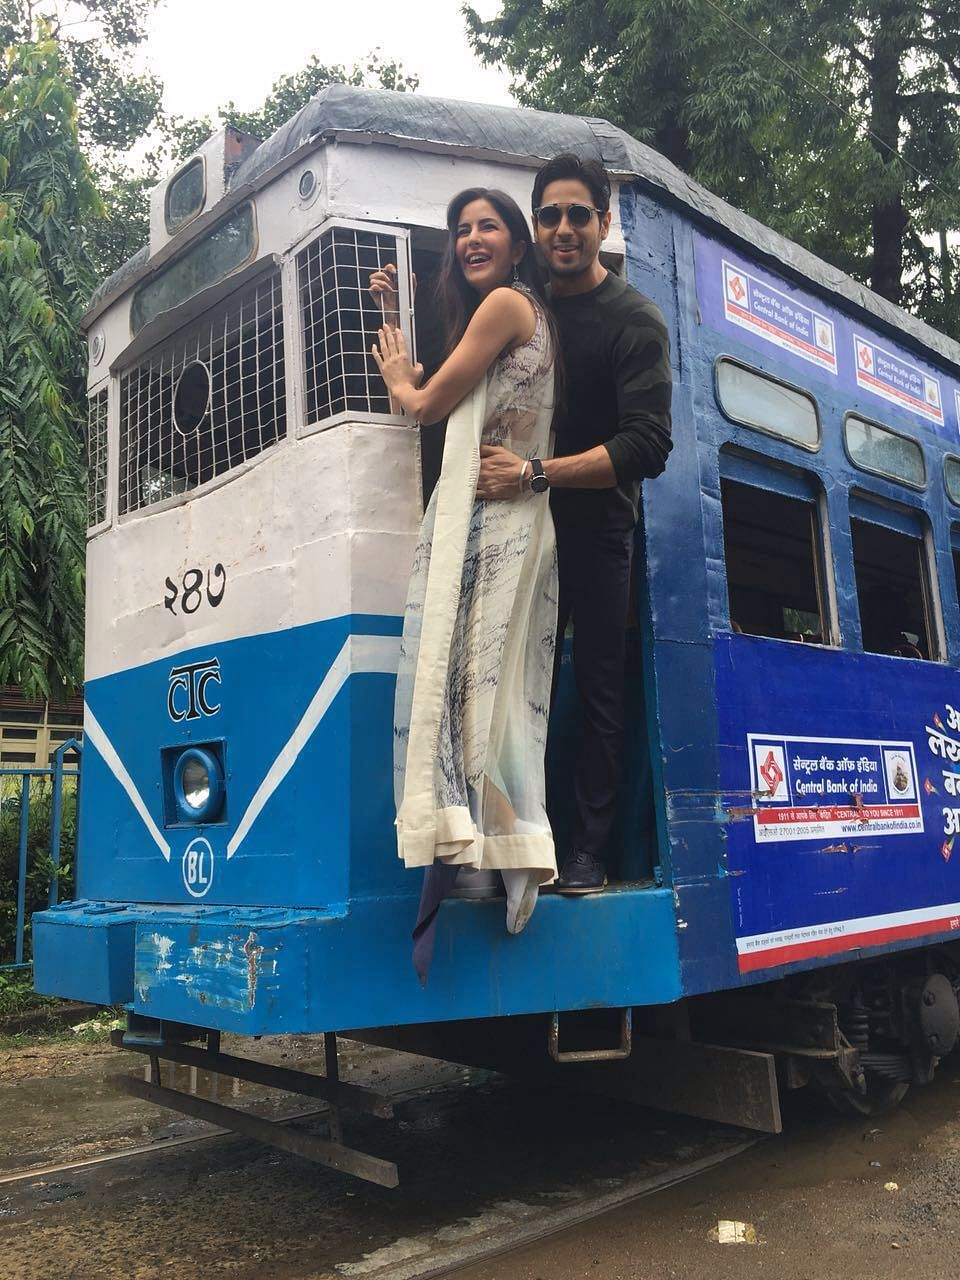 Were Katrina Kaif and Sidharth Malhotra planning to escape before the release of the film? (Photo Courtesy: Spice PR Team)